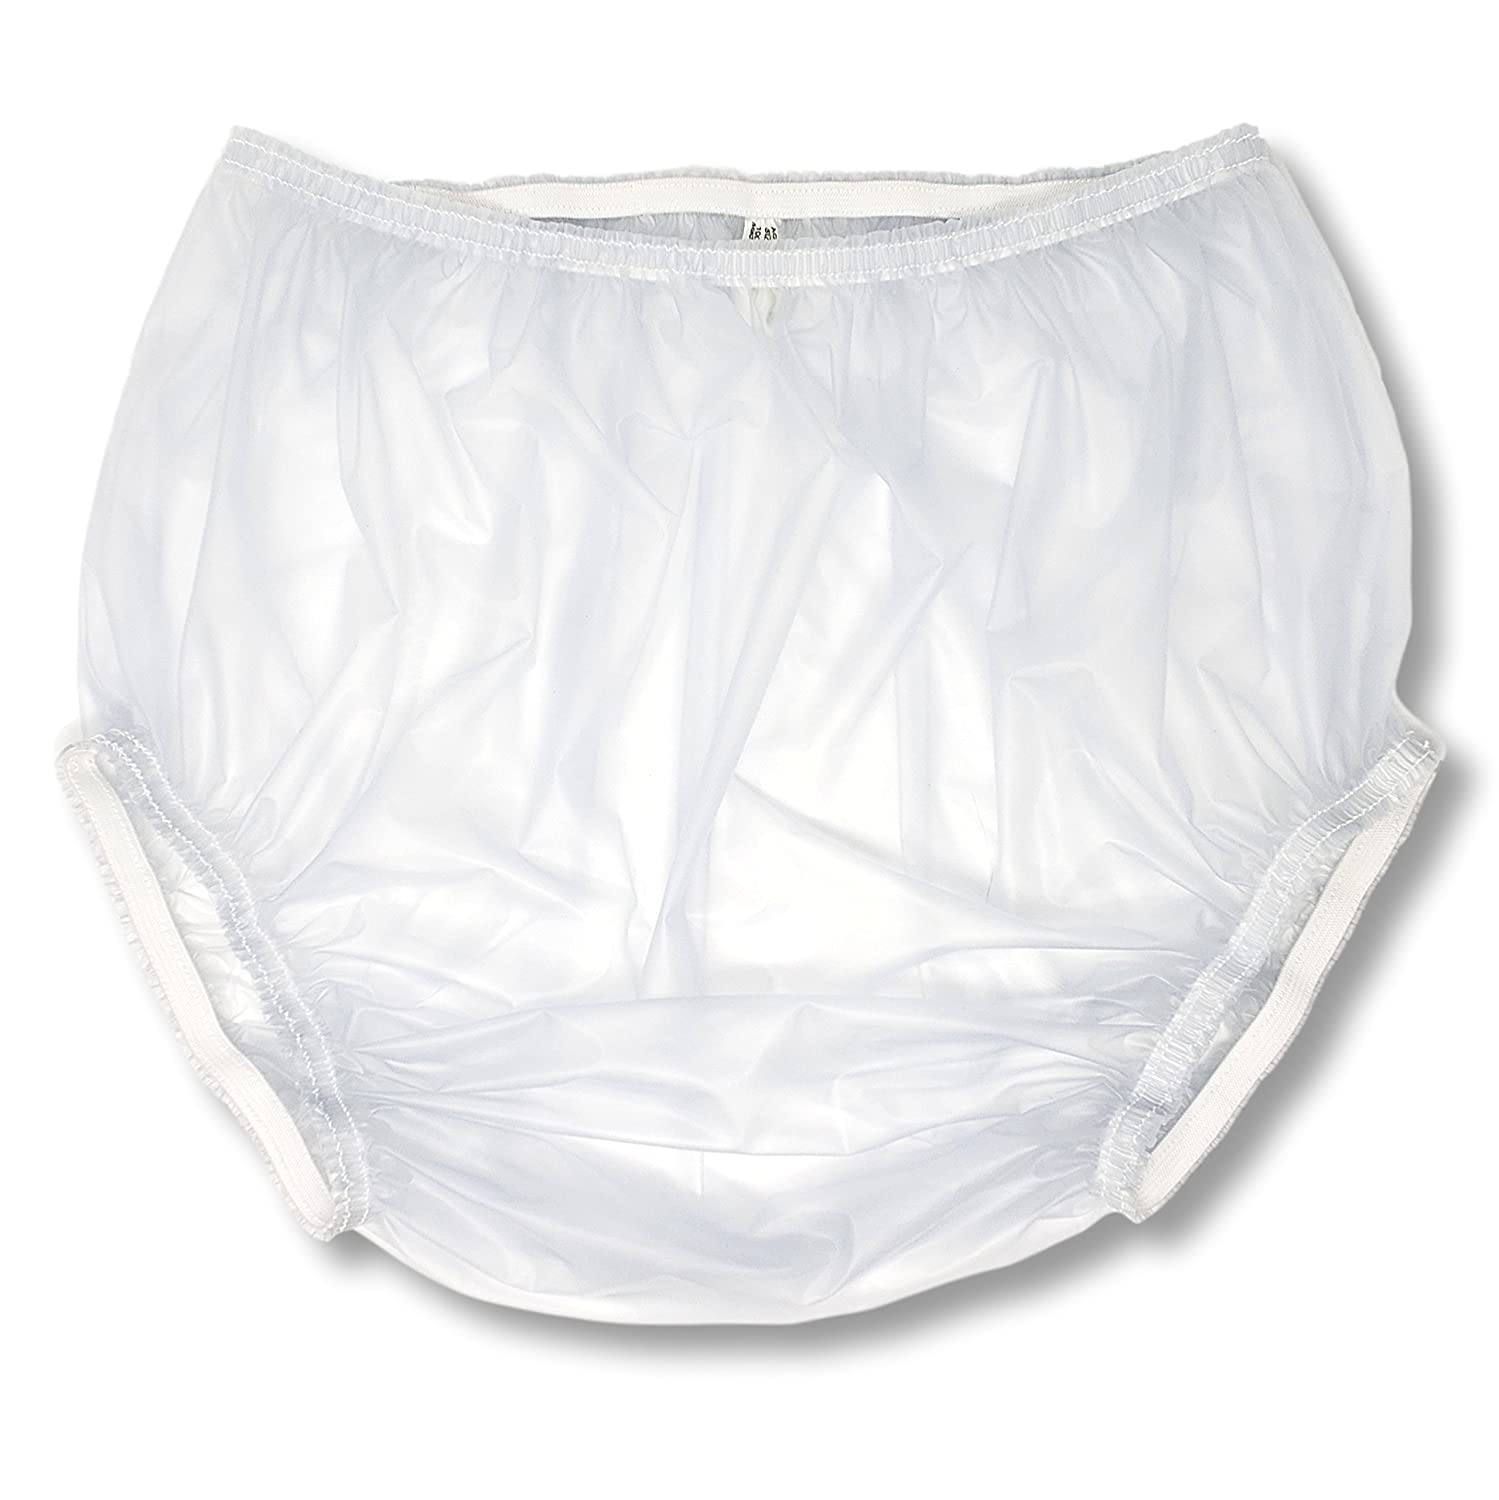 Rearz - ANGELA Plastic Pants - Semi-Clear